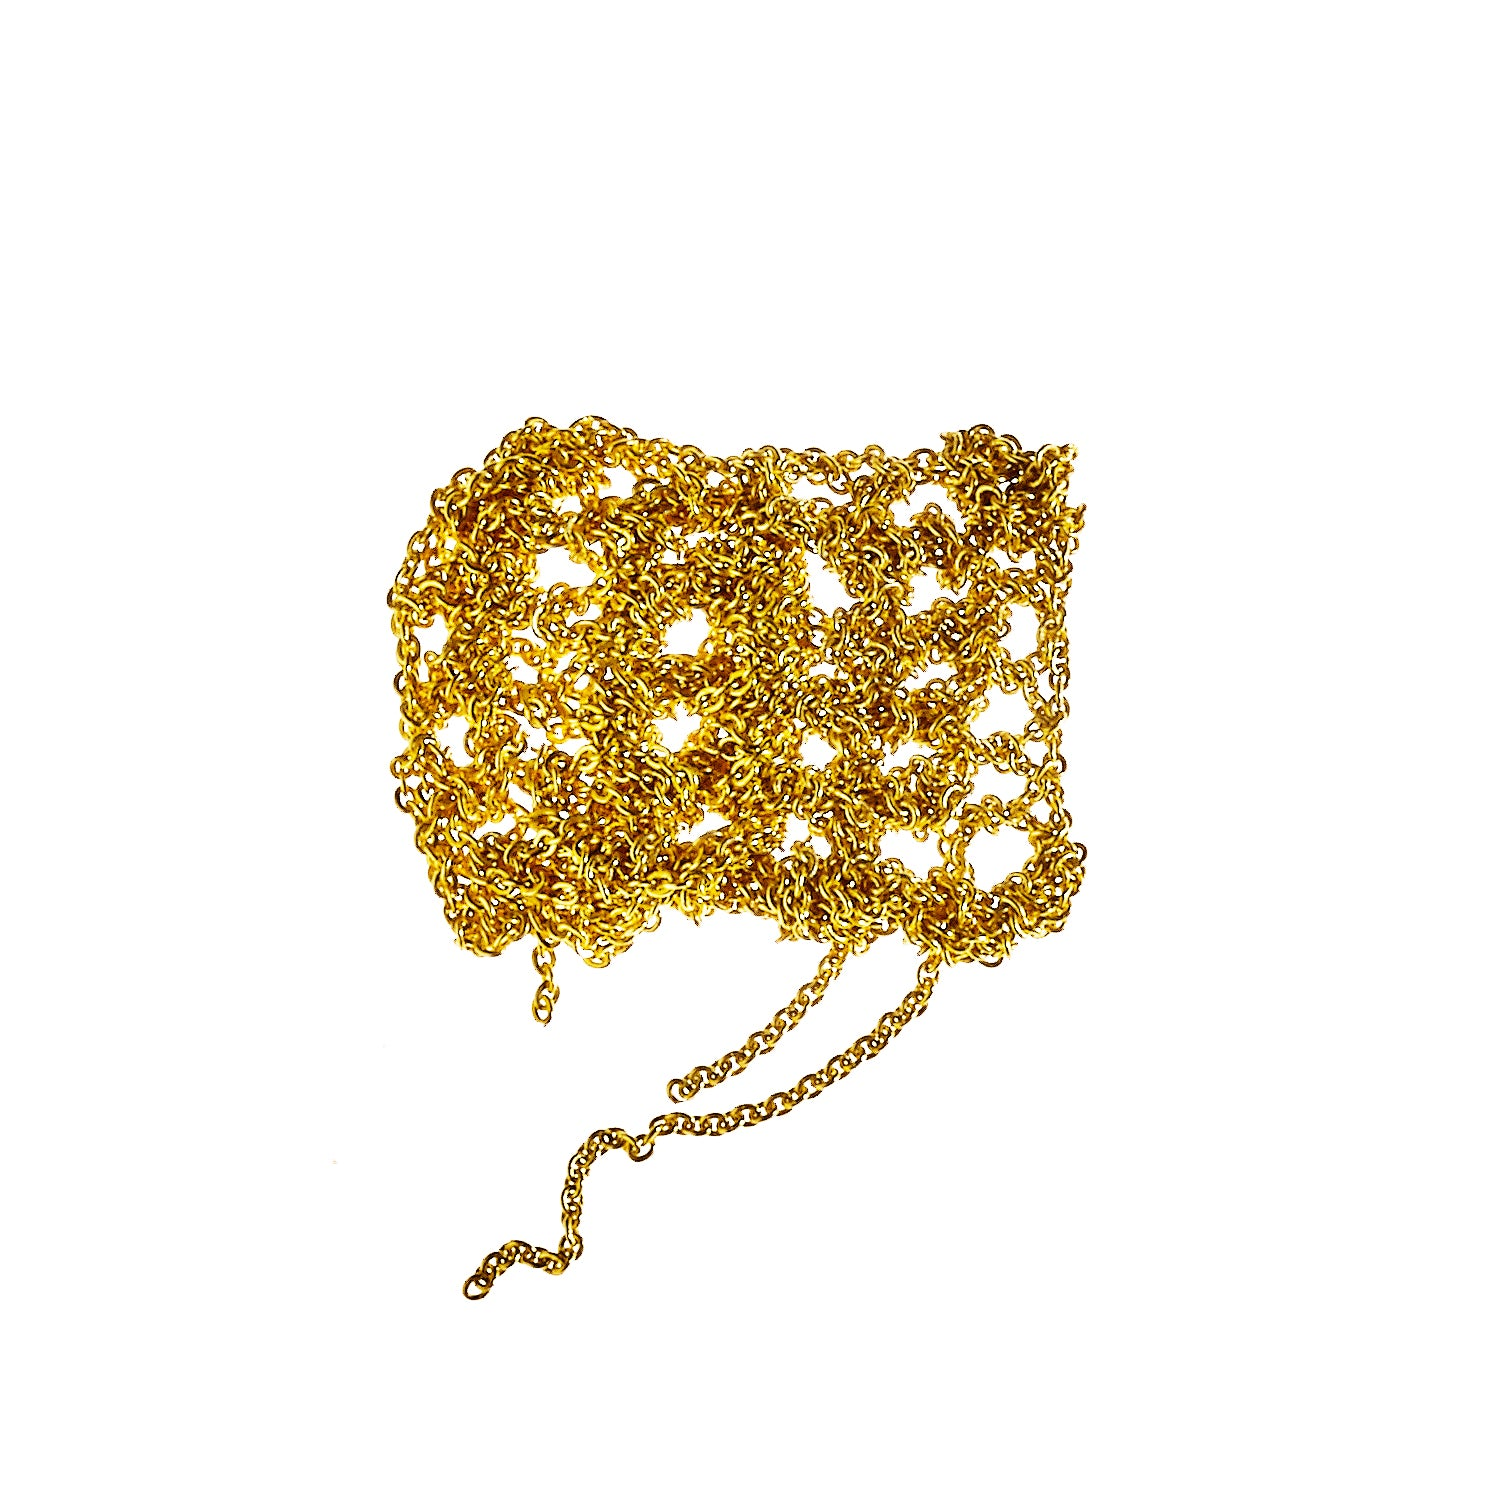 Connection Bracelet in Gold